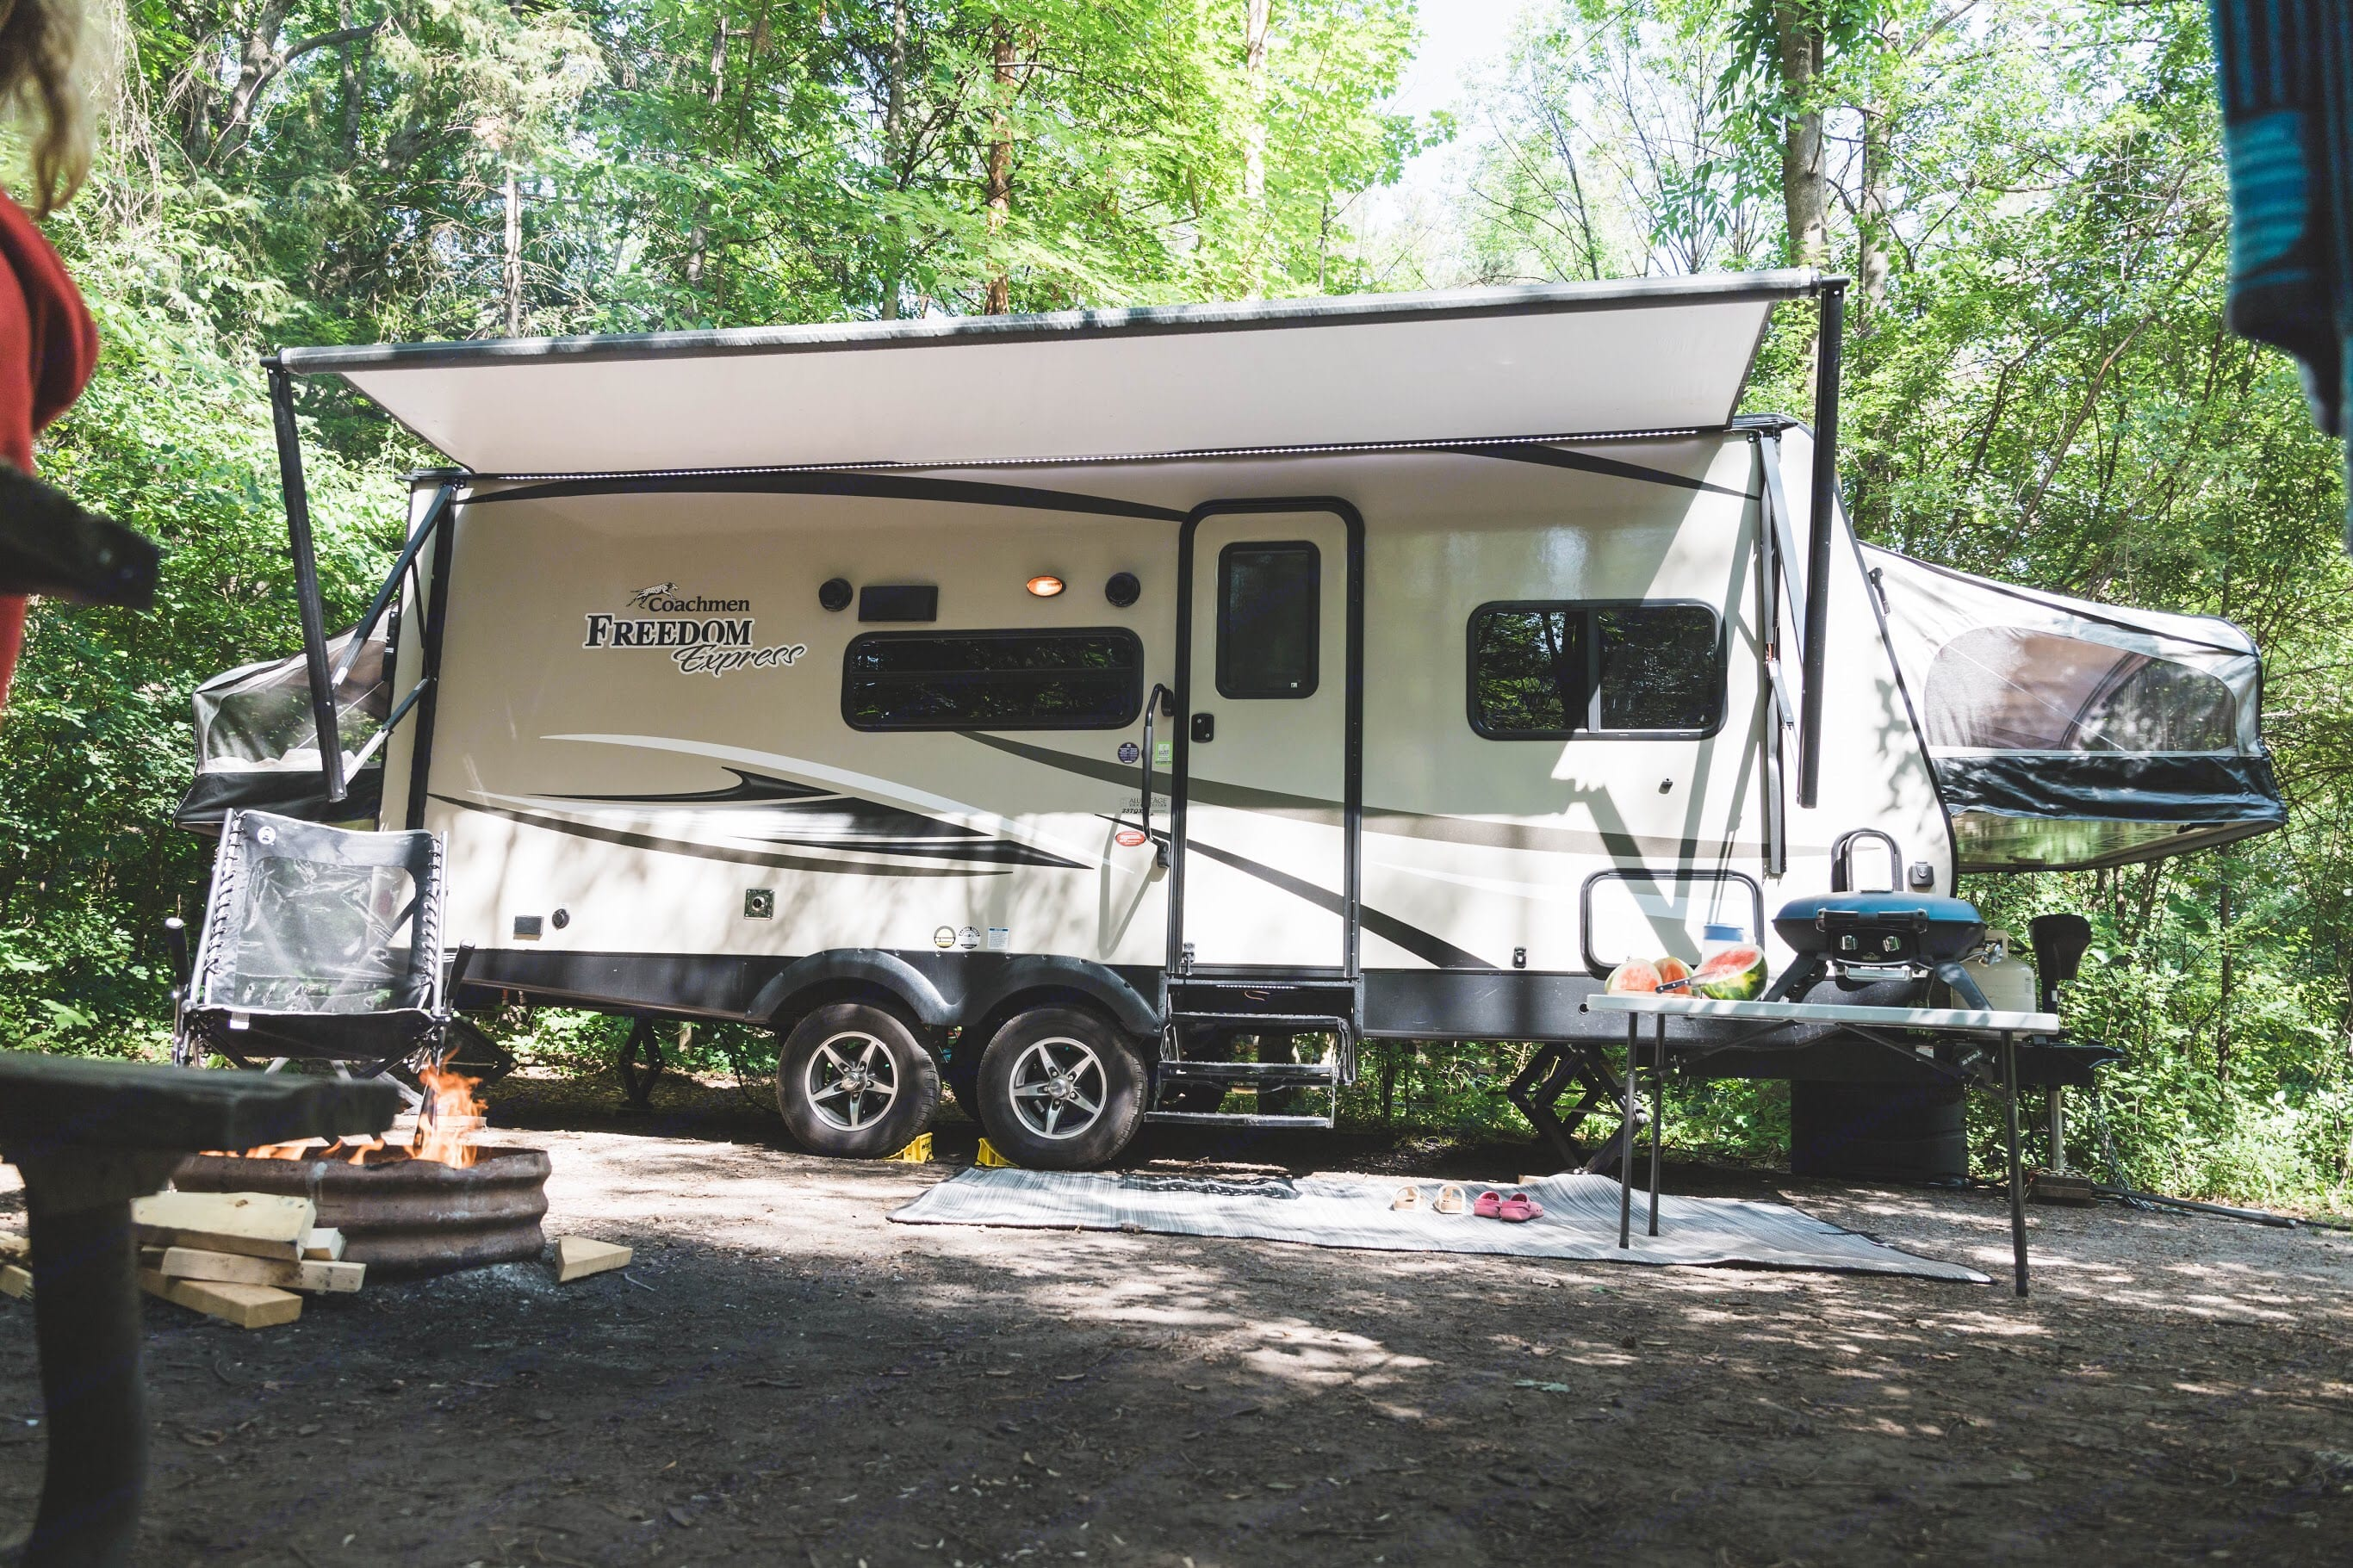 A 30' trailer travels in a 23' body. The 3 queen size bed pop downs and the slide out dinette transforms this medium size trailer into a super trailer.. Coachmen Freedom Express 2018